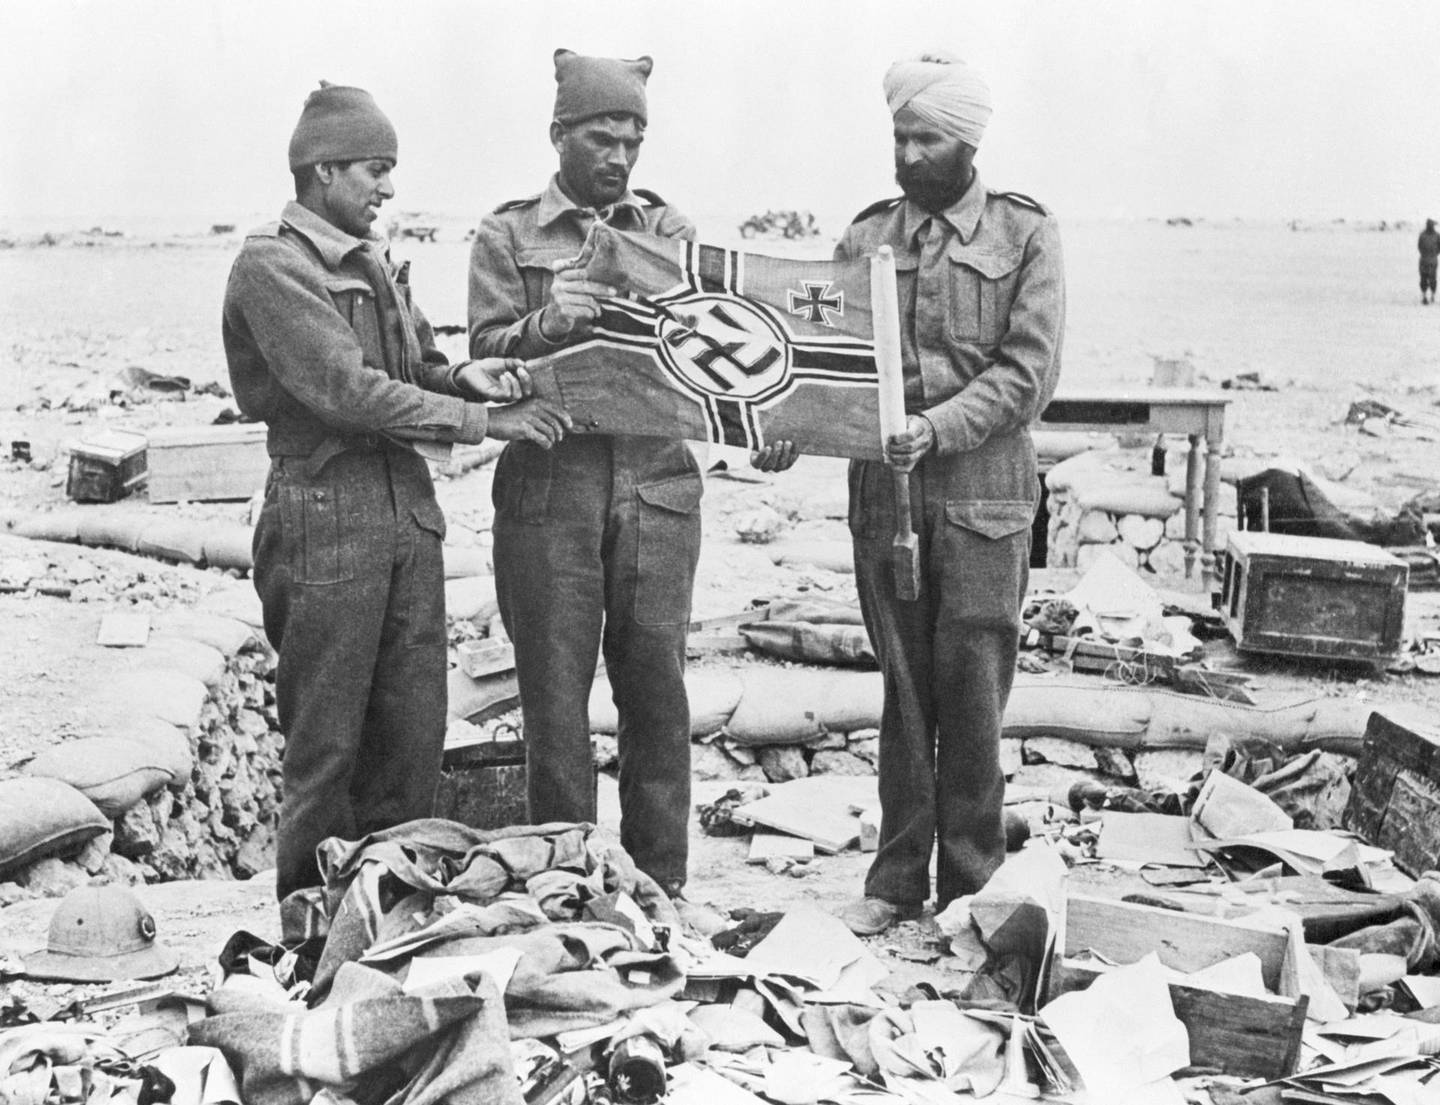 (Original Caption) 1/5/42-Libya: British Indian troops examine a Nazi flag found among the rubble in the shallow axis trenches on the Western Desert. This picture was made after the capture of Libyan Omar. (Bettmann / Corbis / Getty Images) *** Local Caption *** 2.514690706 rv21ma-books-raghavan01.jpg